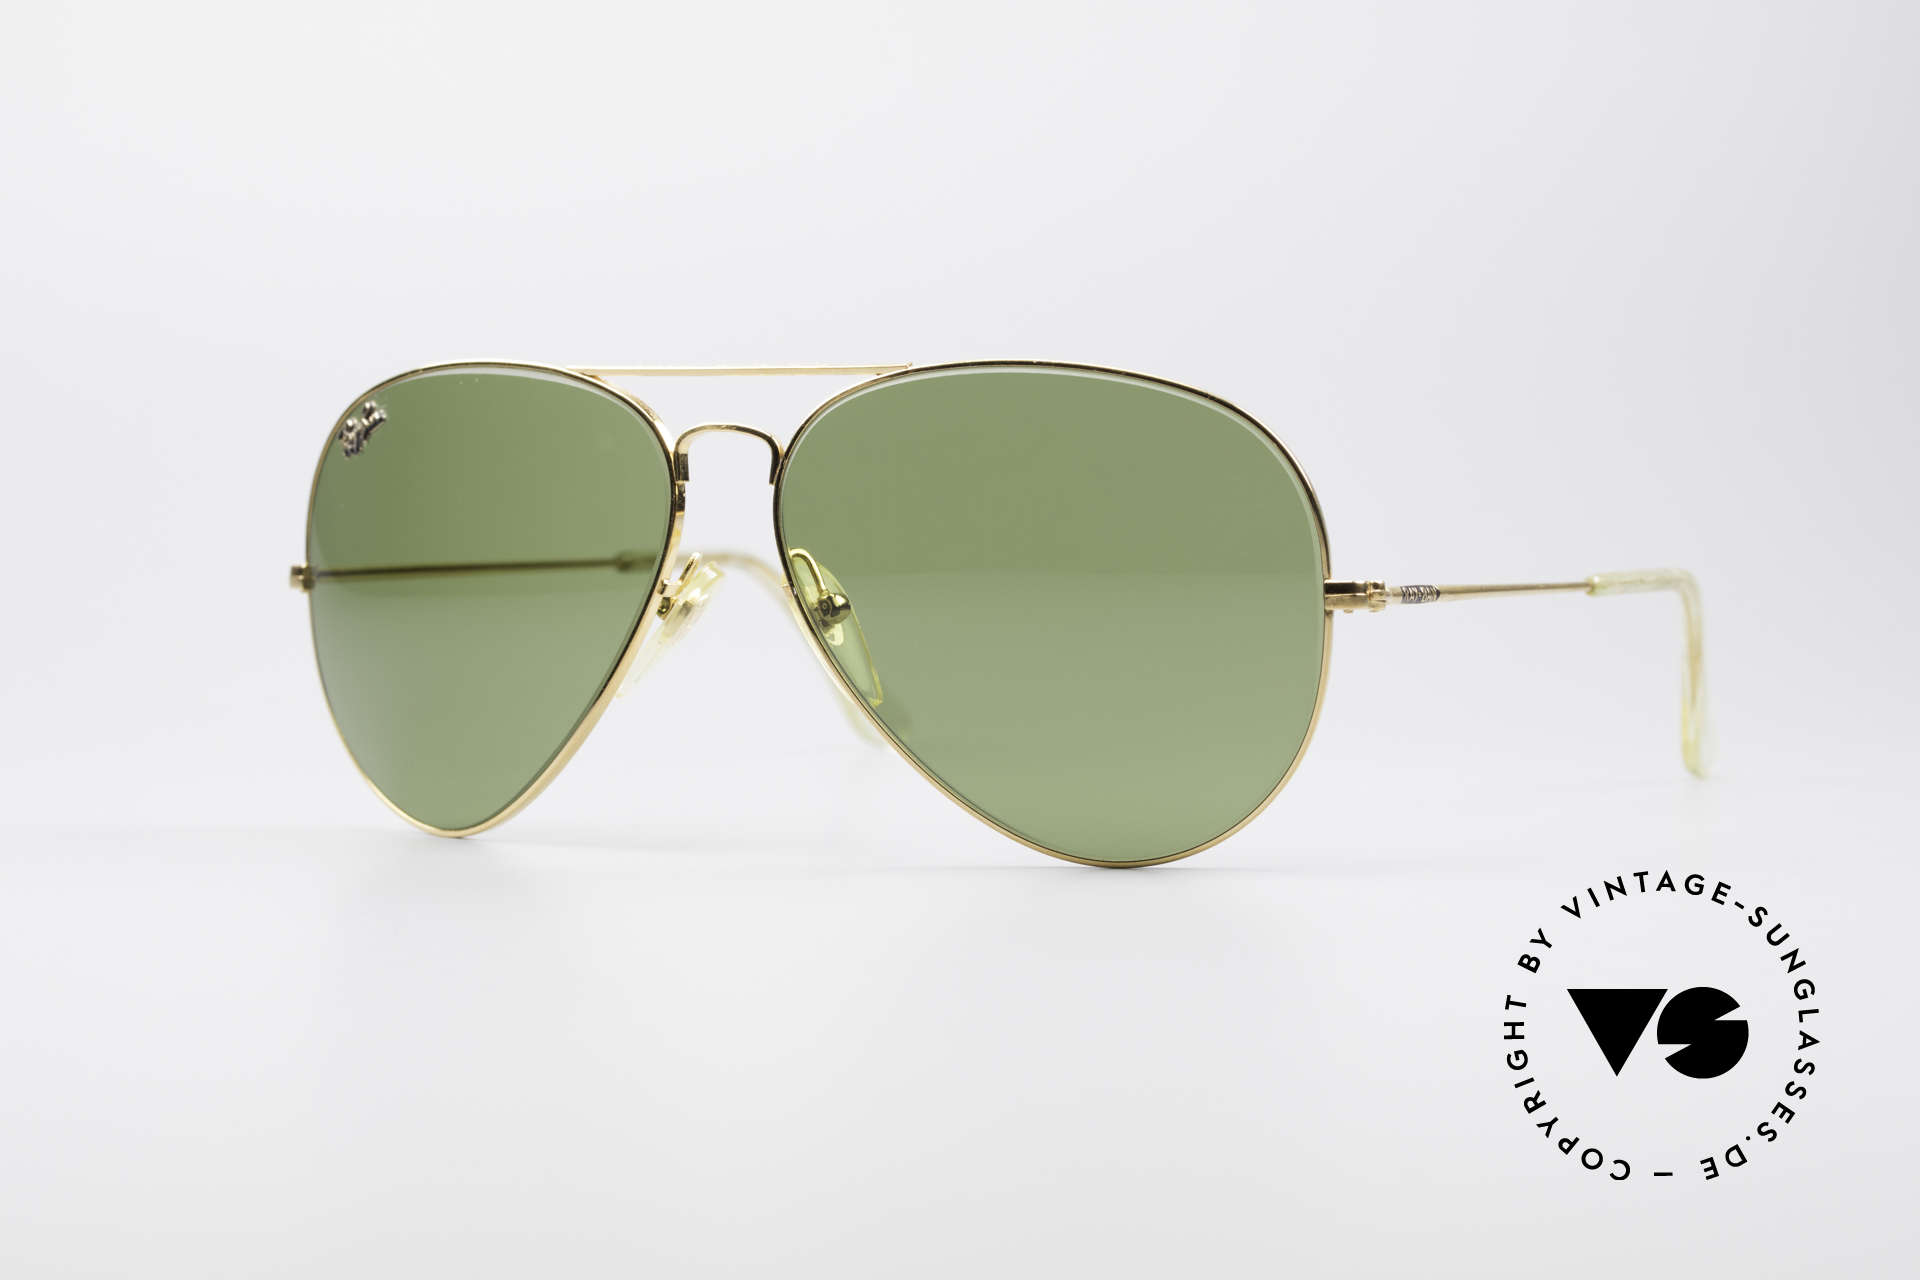 aa658800c5 Sonnenbrillen Ray Ban Large Metal II Elite Limited Edition USA | Vintage  Sunglasses